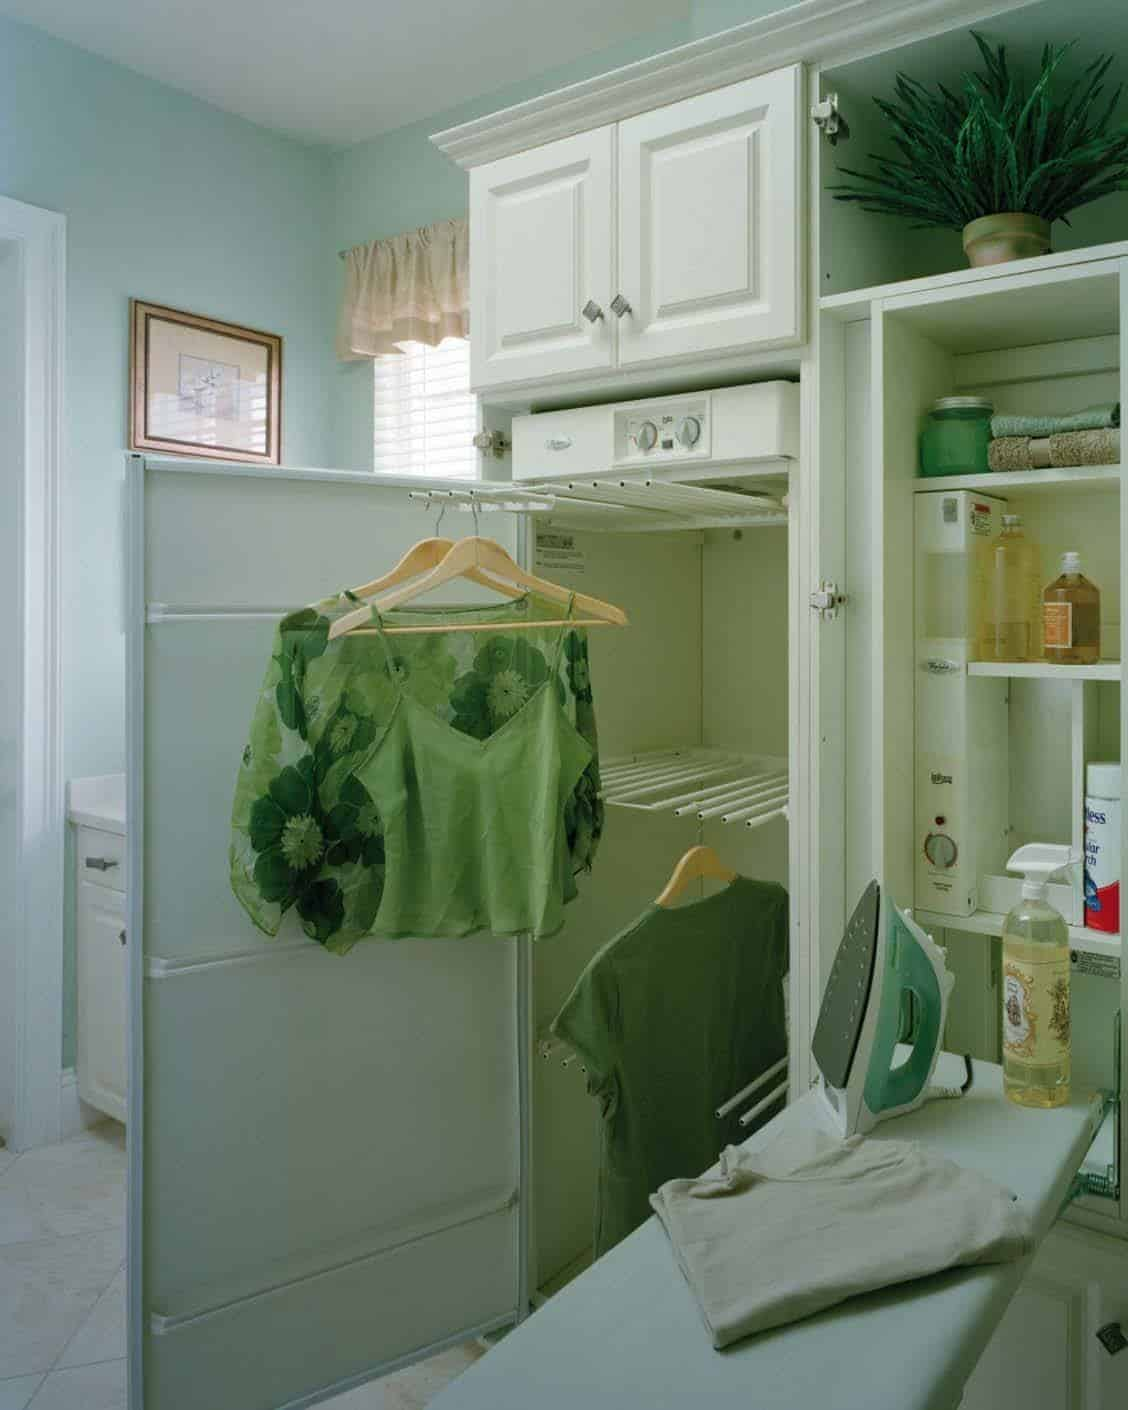 Laundry Room Organization Ideas-07-1 Kindesign